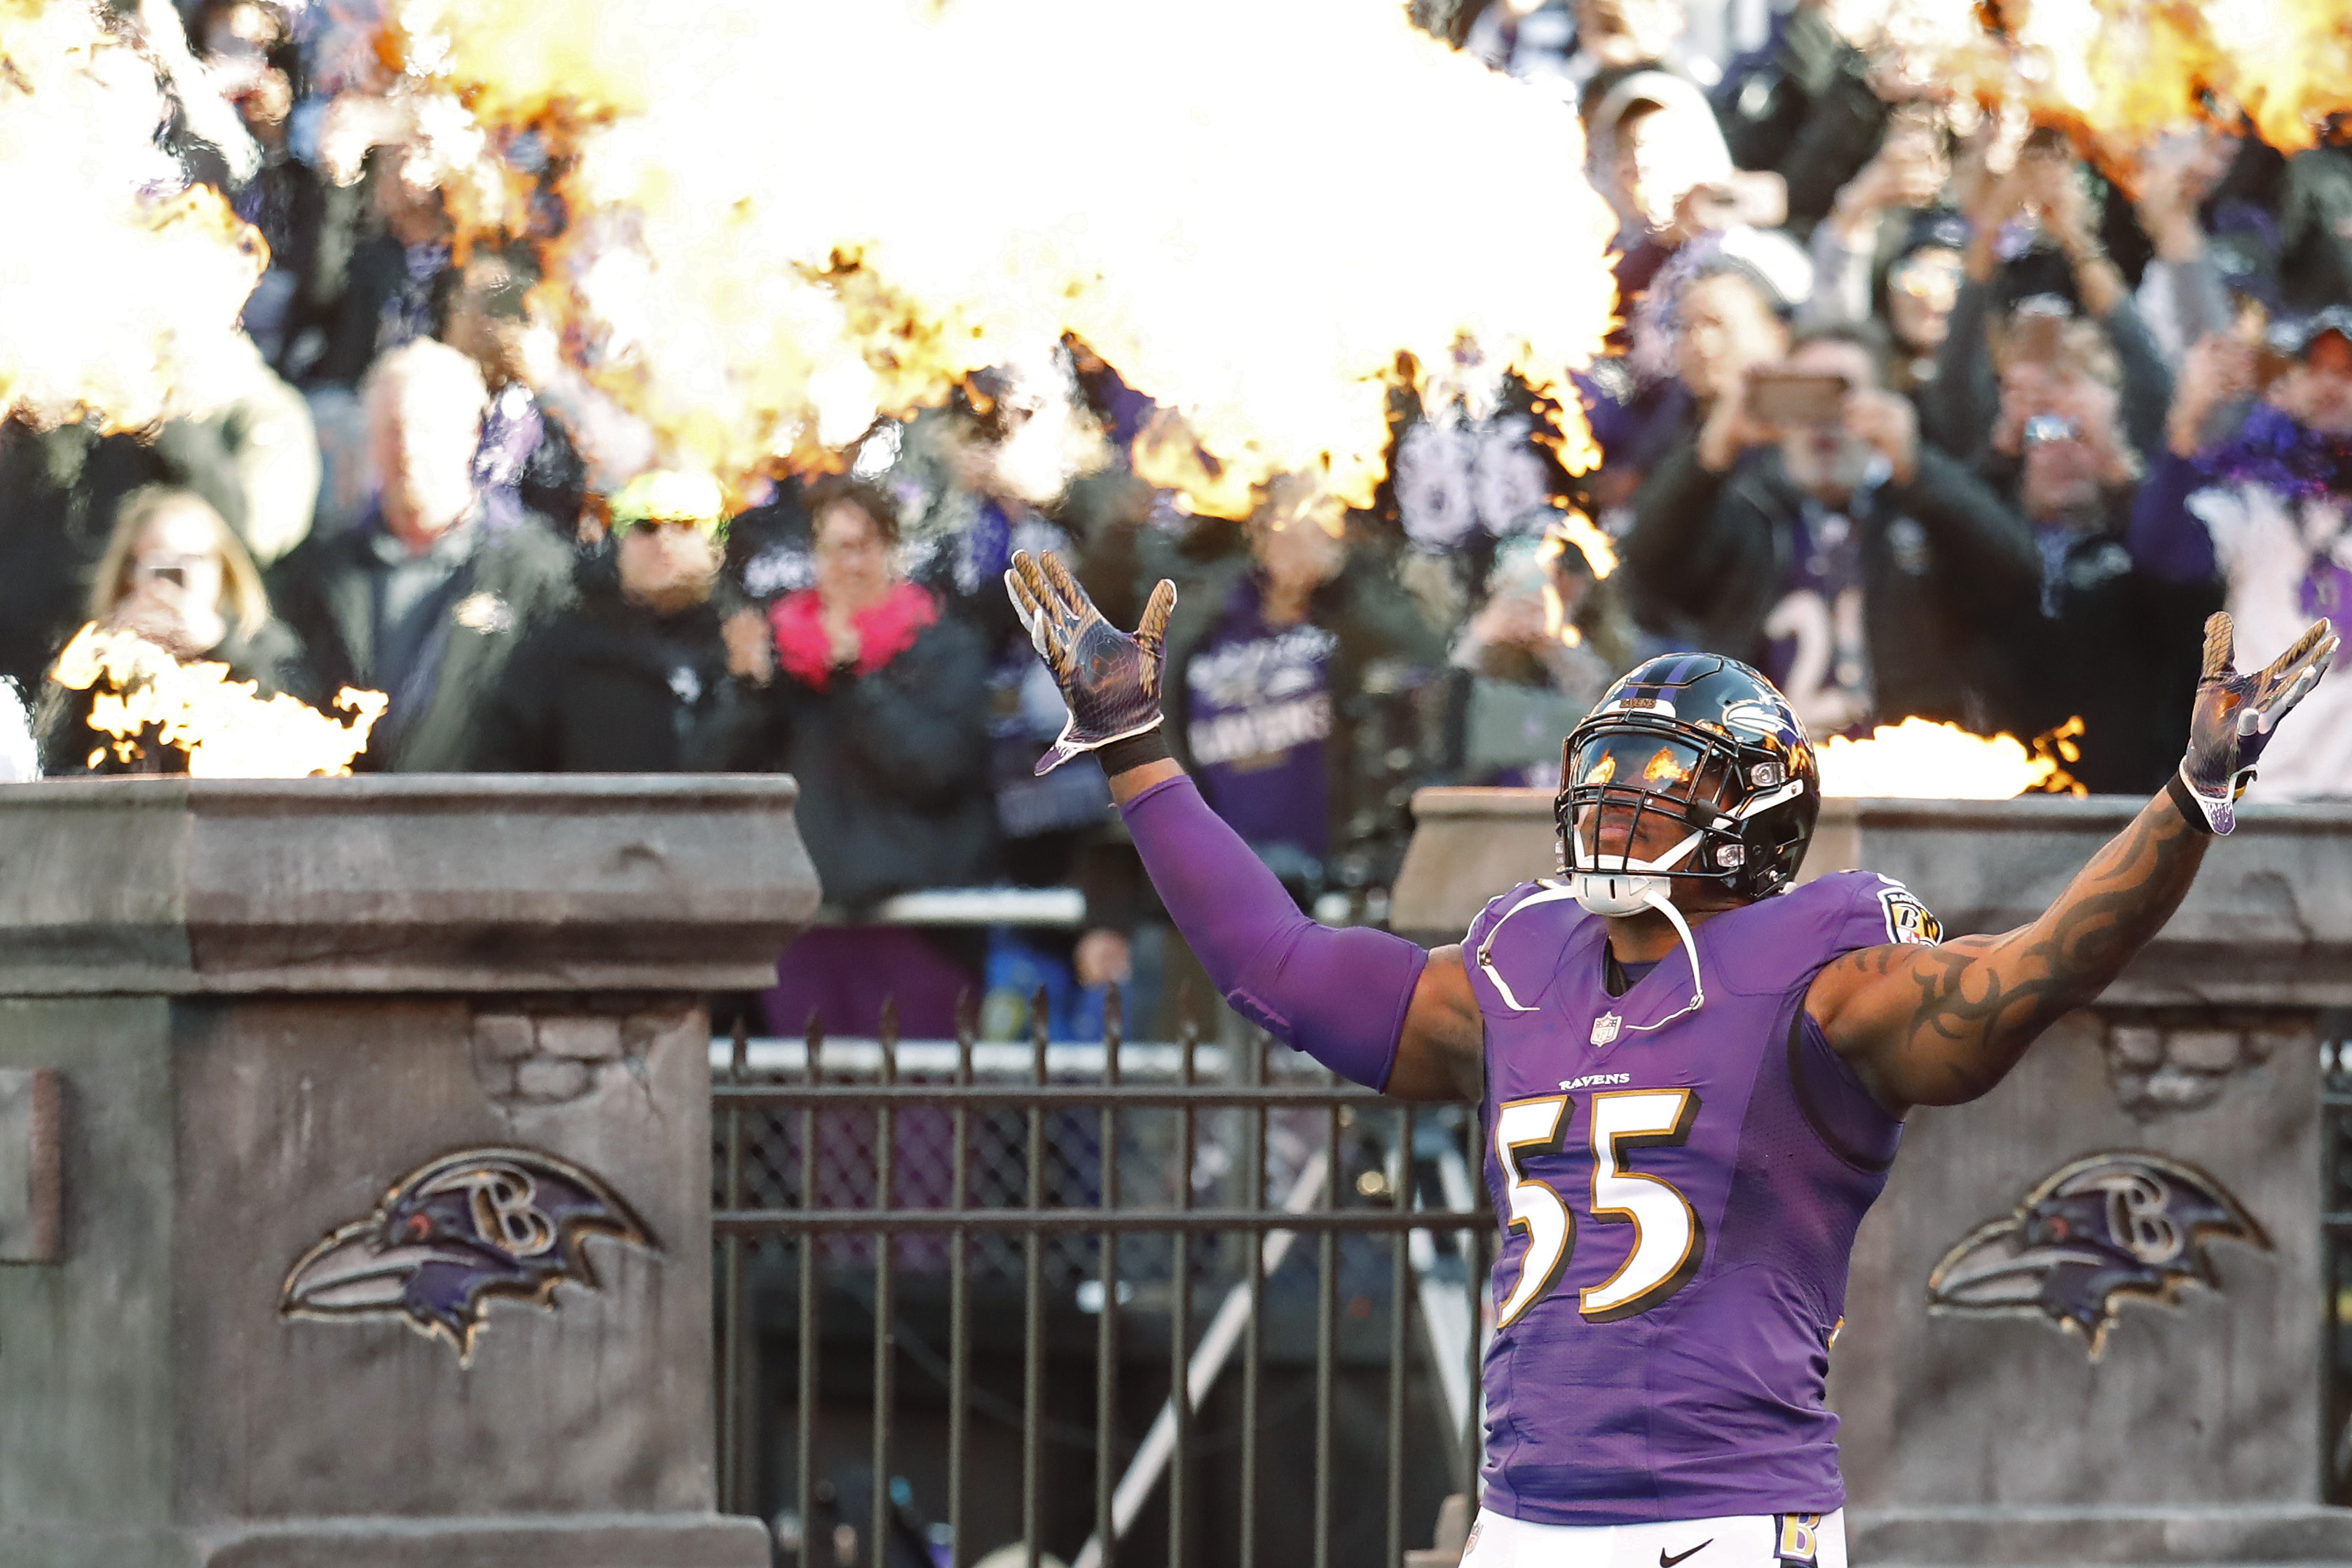 Ravens Homecoming for Suggs?